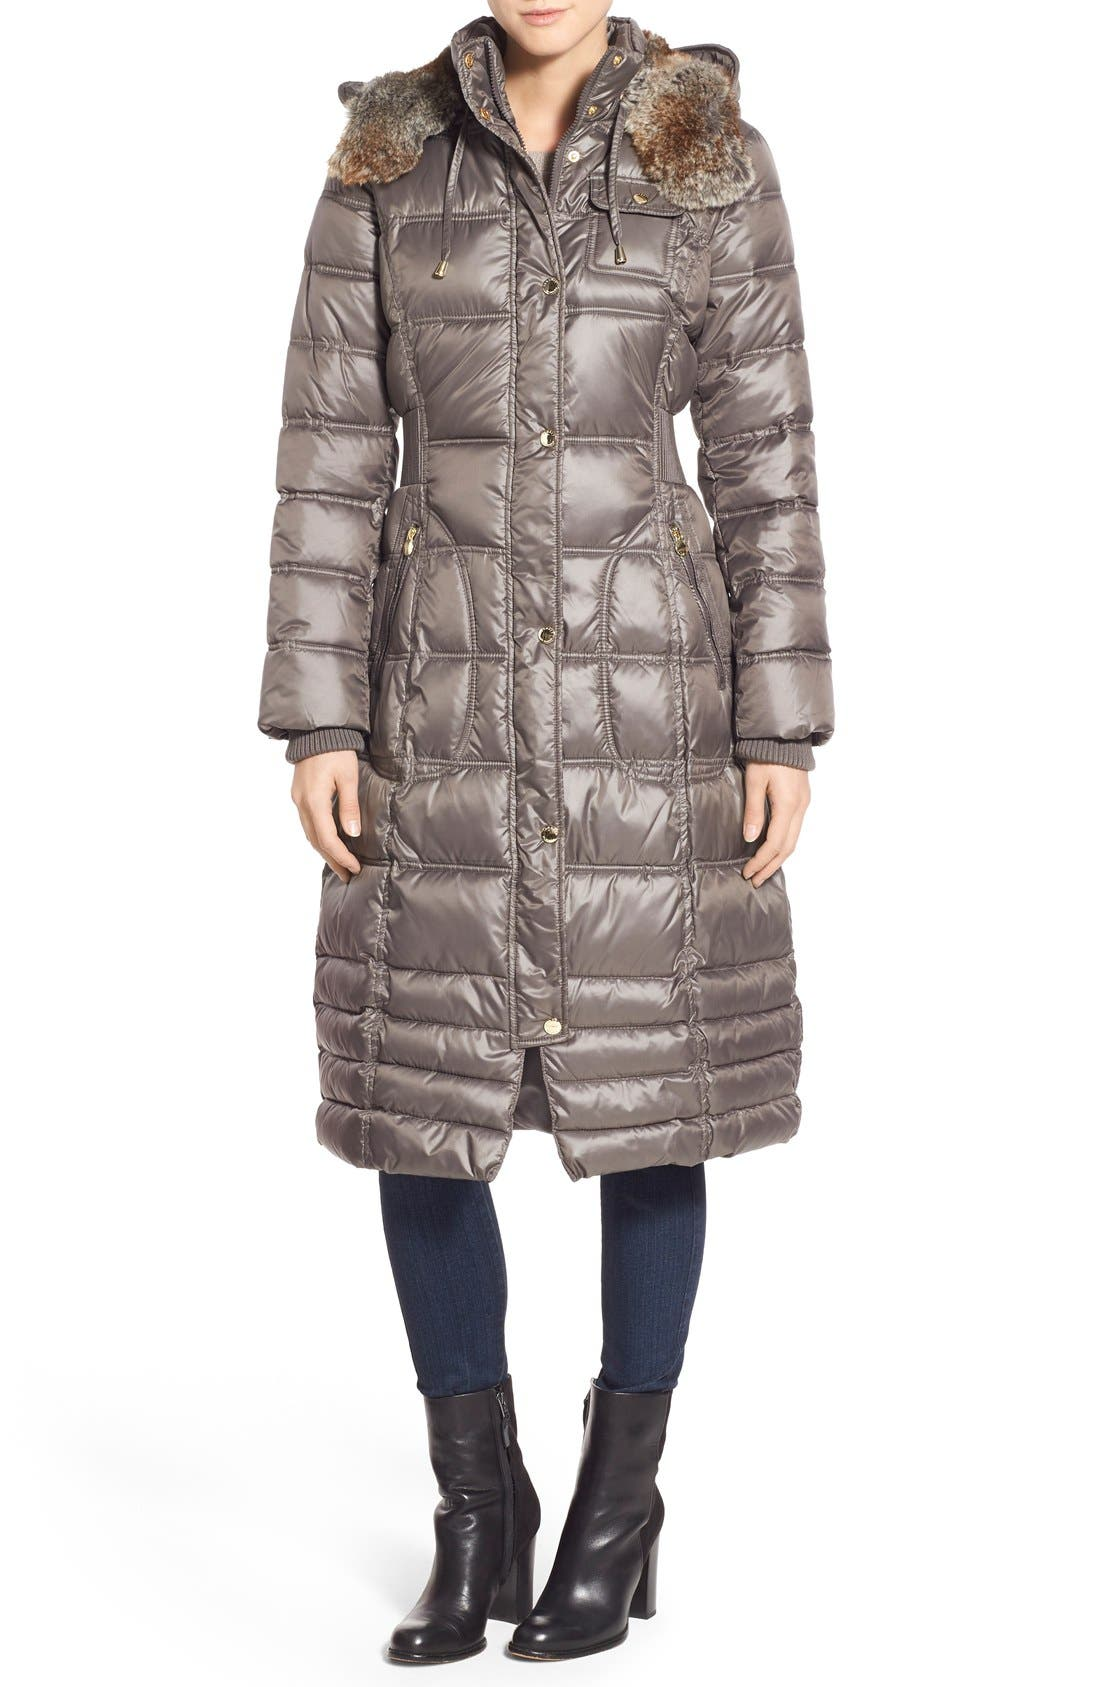 Alternate Image 1 Selected - Laundry by Design Quilted Coat with Faux Fur Lined Hood